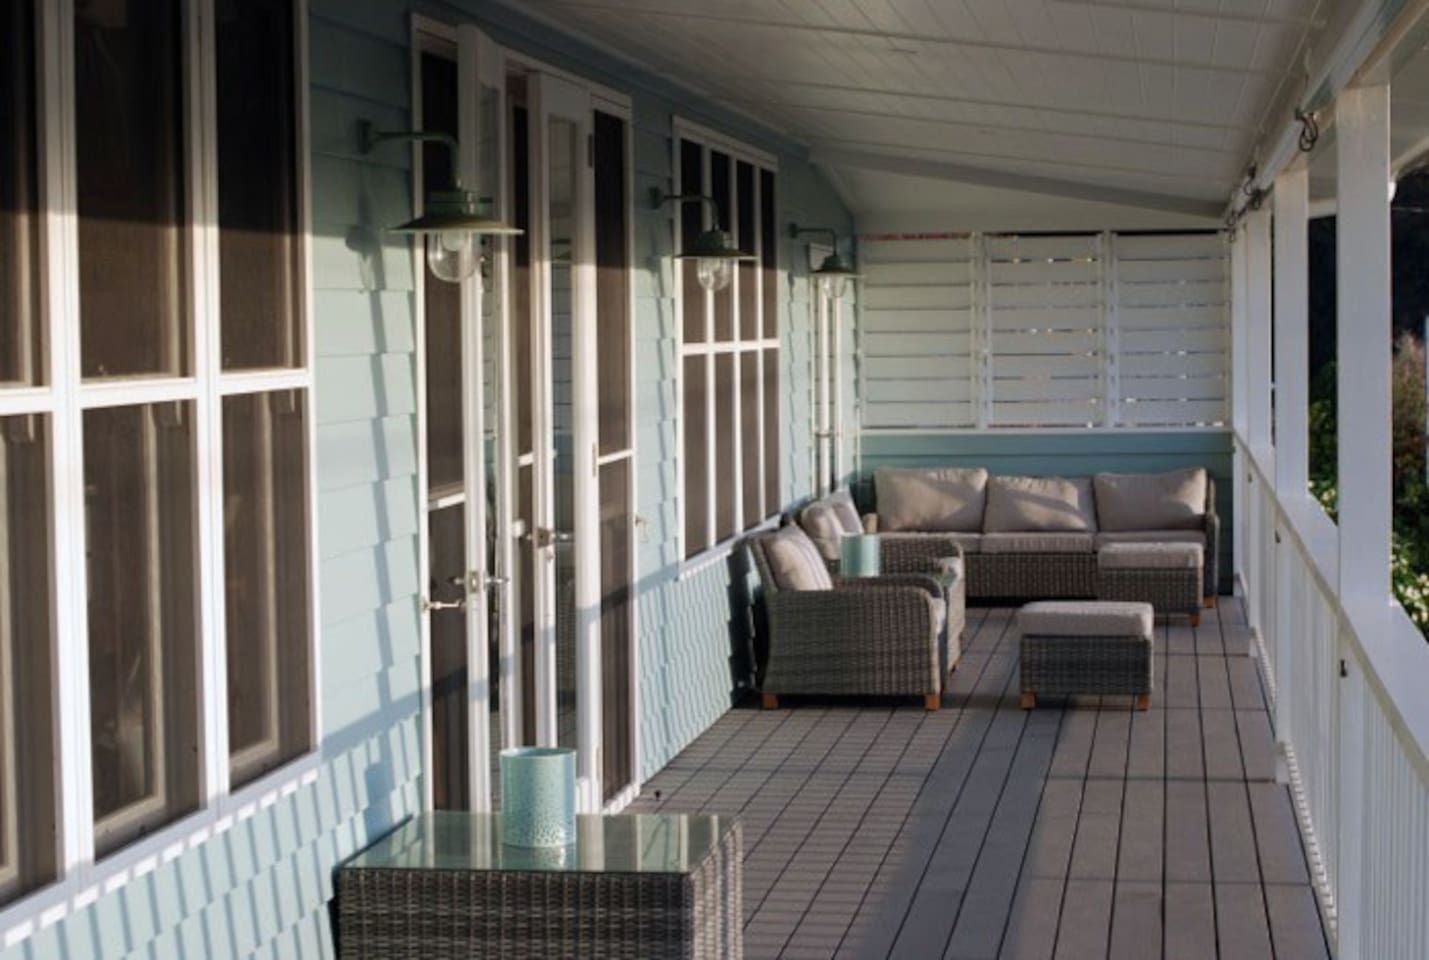 Bluebell's extensive western deck enjoys unmatched panoramic views of Wallis Lake and the hills beyond. Be blown away by the sunsets, occasional dolphin pod or sea eagle cruising on the Pacific Ocean breeze.